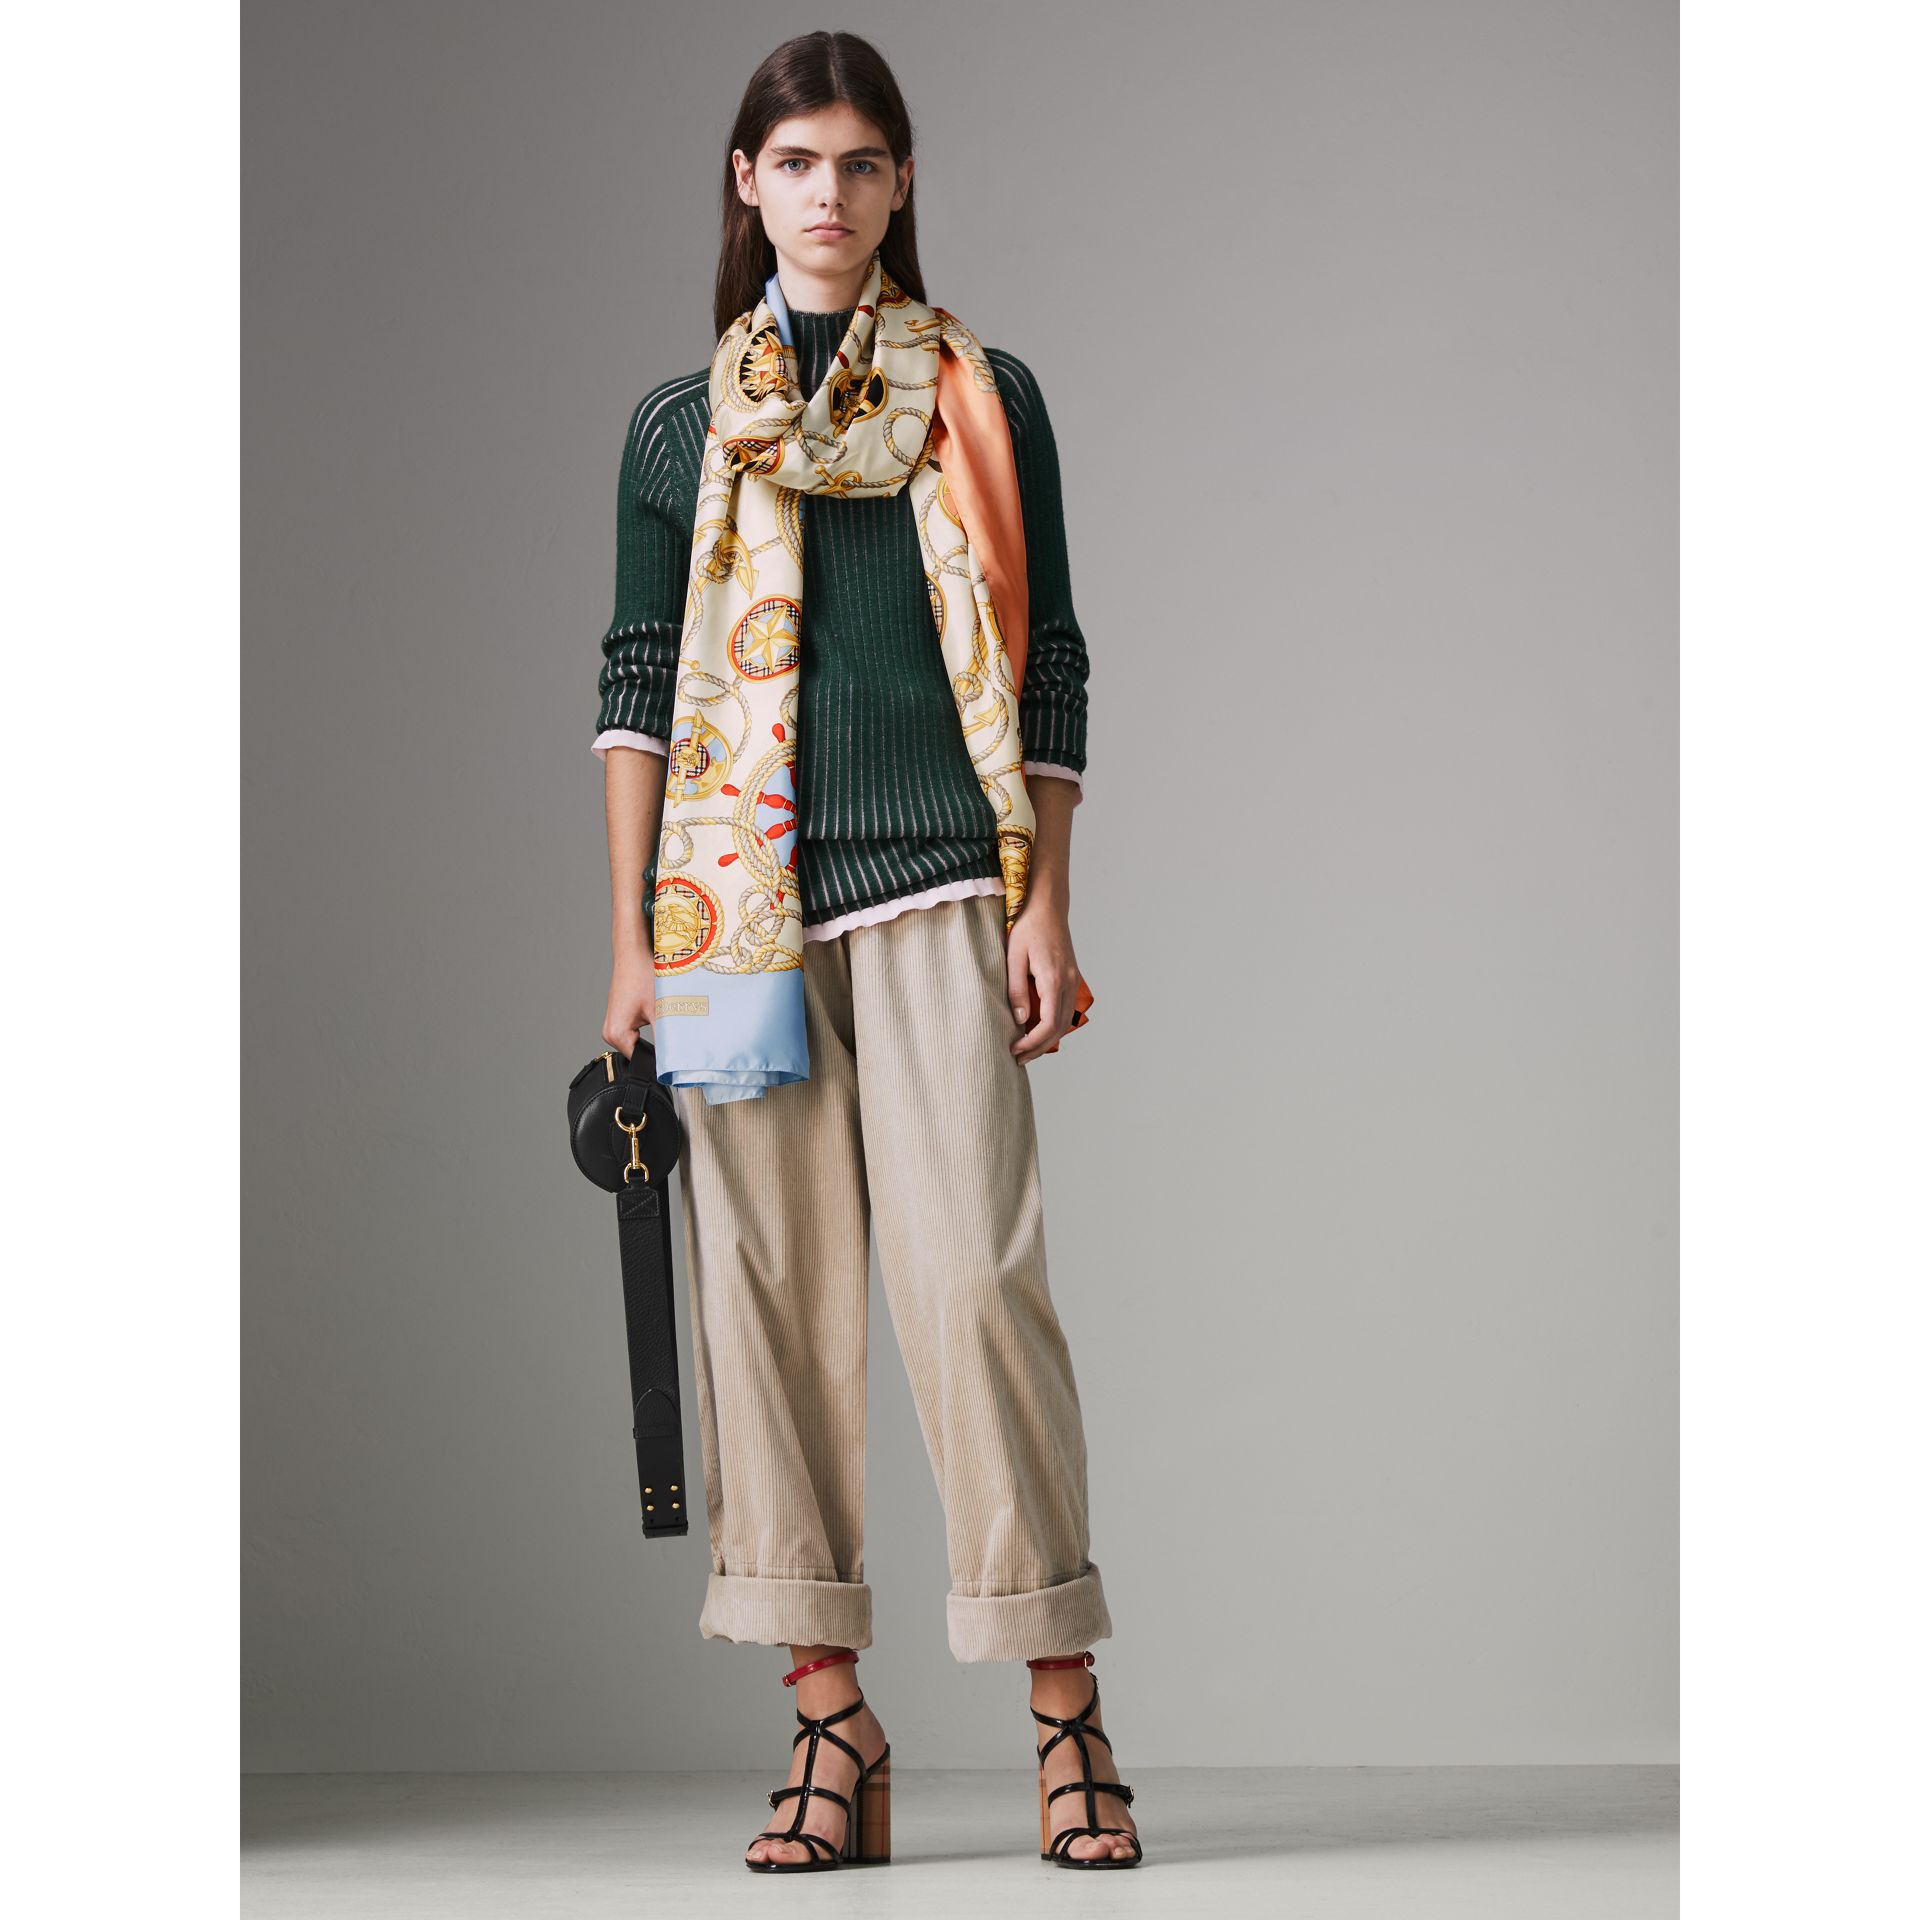 Archive Print Silk Scarf in Multicolour - Women | Burberry Canada - gallery image 2